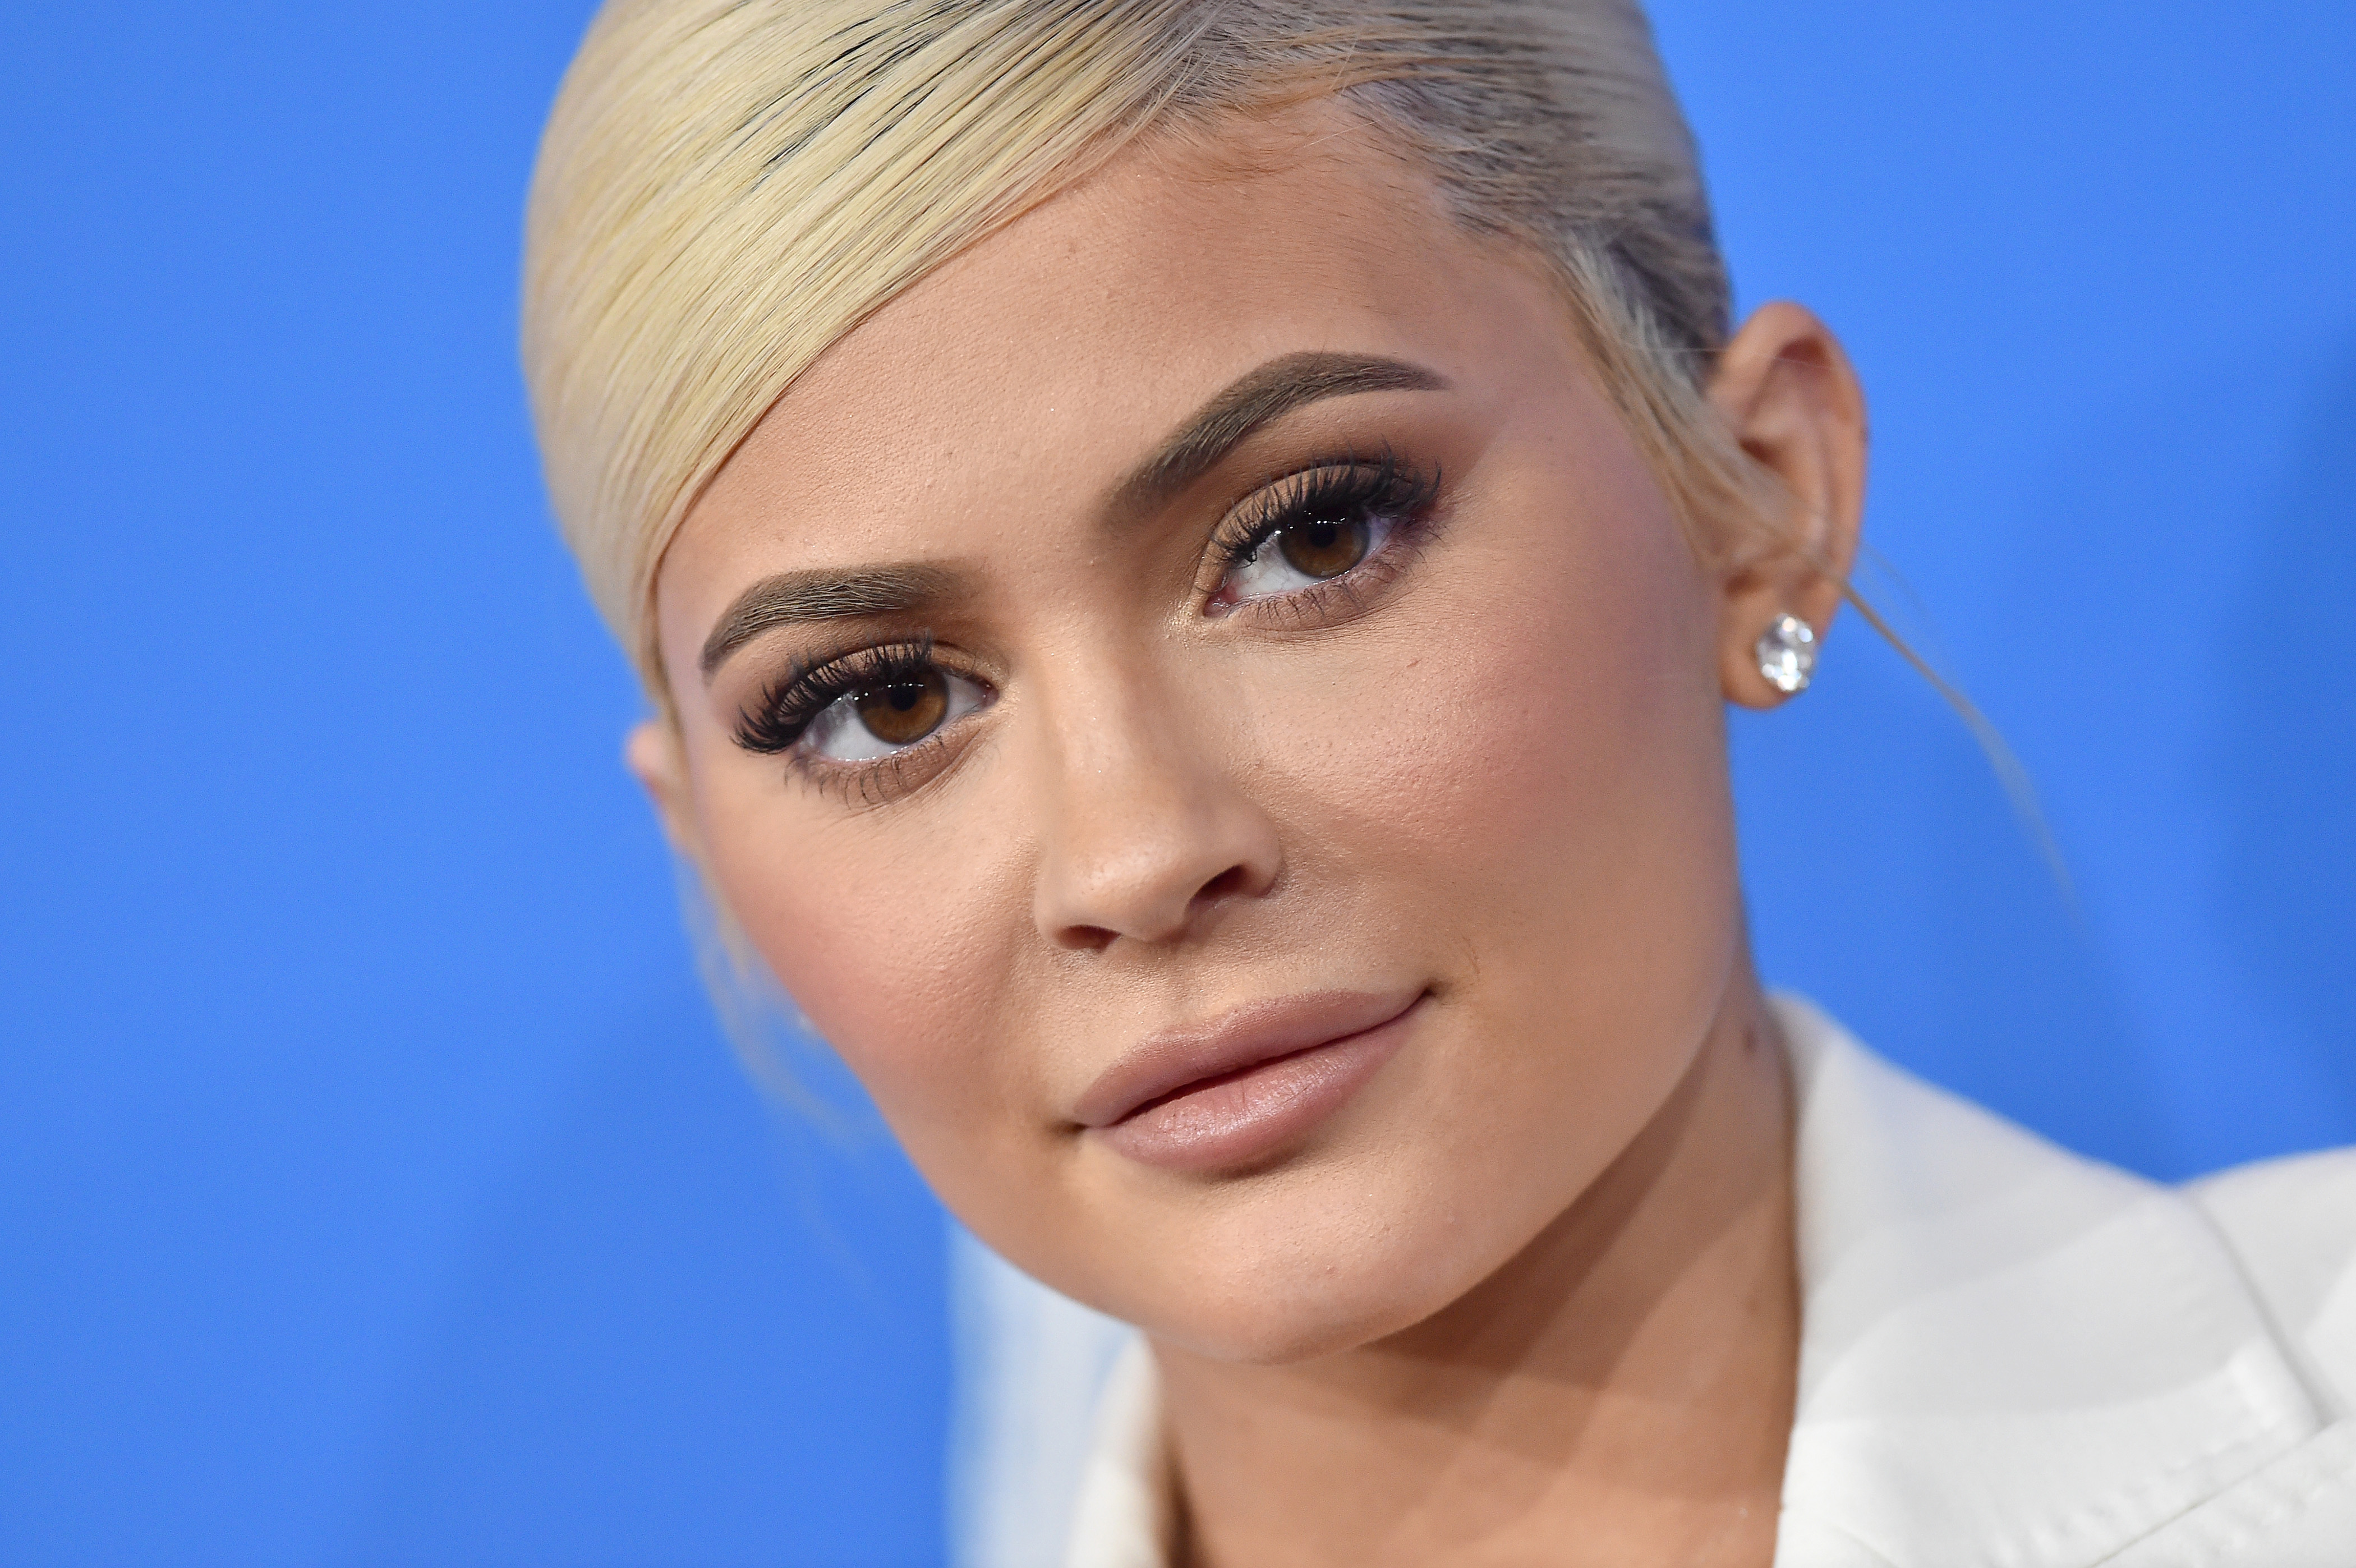 Kylie Jenner is fueling marriage rumors again with her latest Insta post